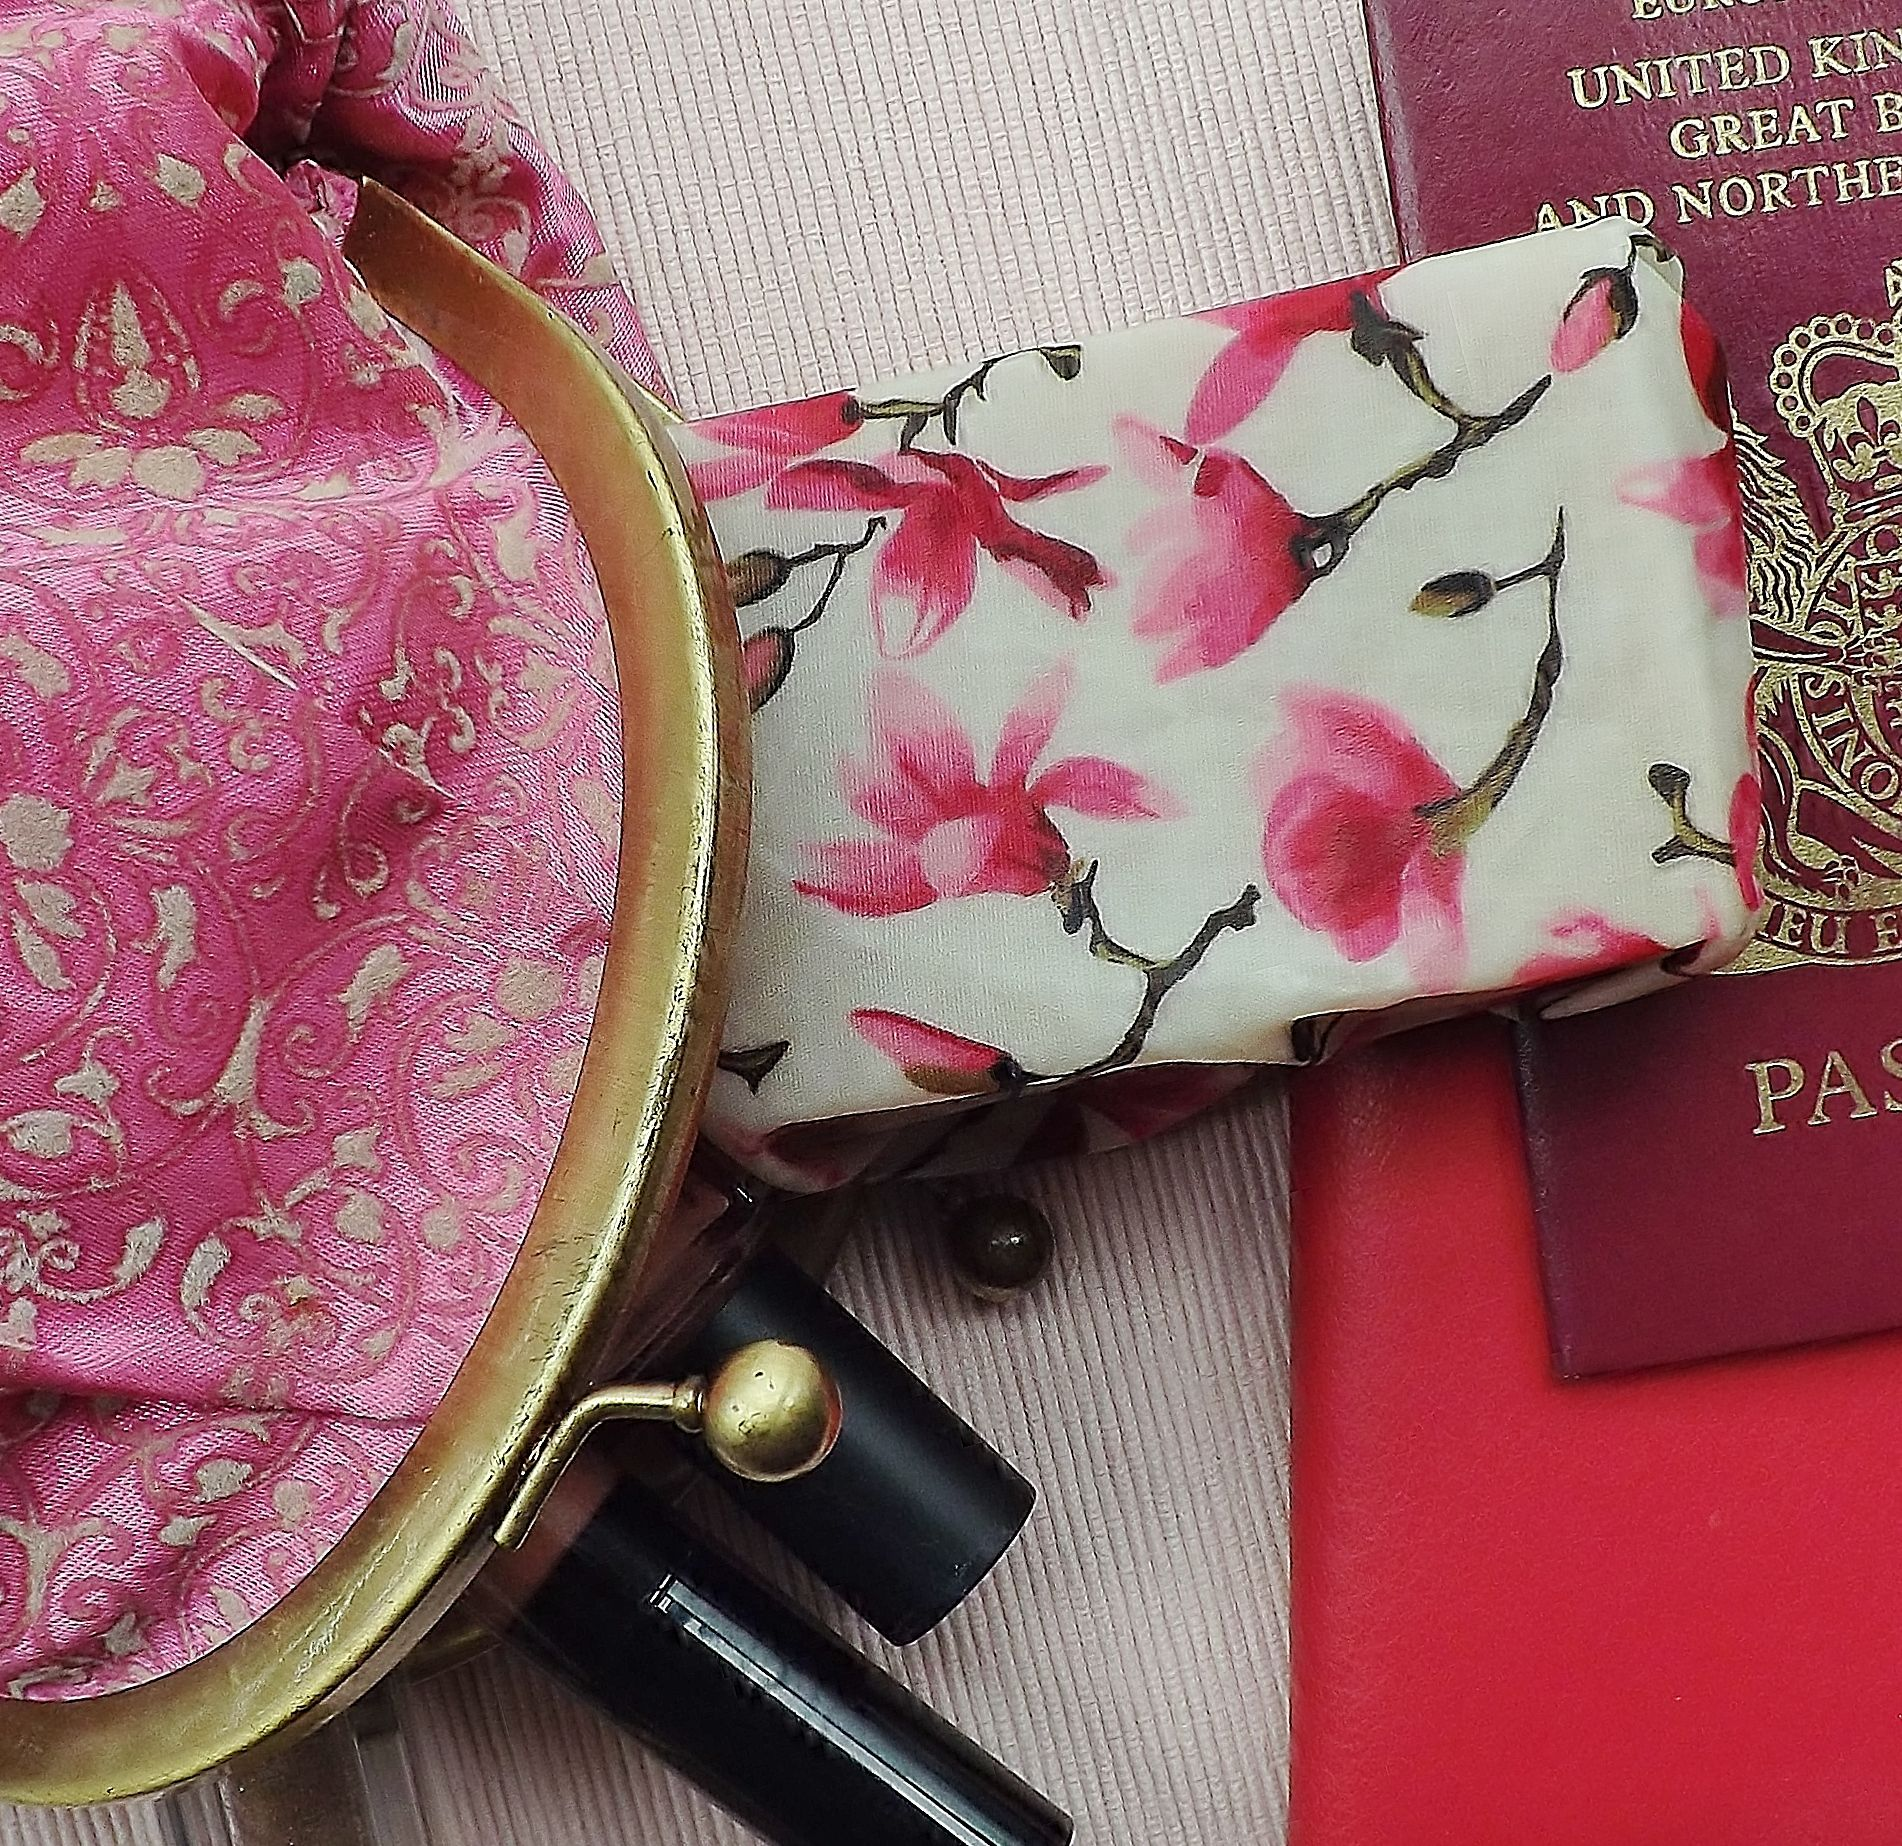 """V-Eco Pamper Packsâ""""¢,  SoapSaverâ""""¢ wrapped around a bar of soap alongside a cosmetic bag and passport"""